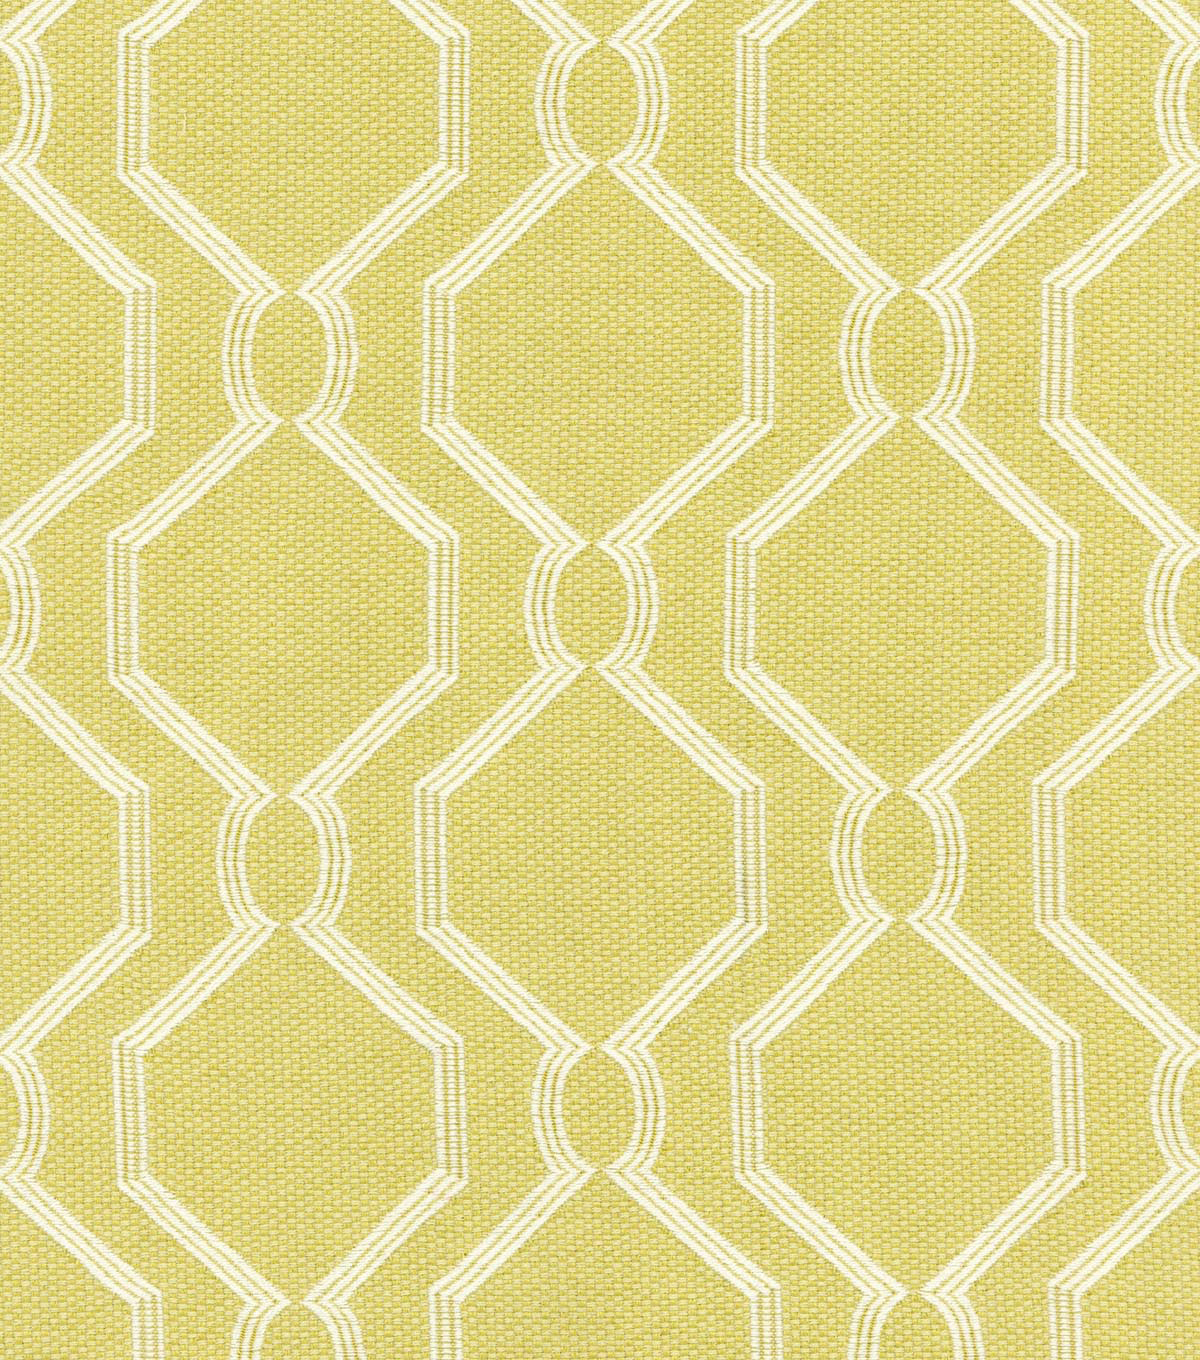 P/K Lifestyles Multi-Purpose Decor Fabric 54\u0022-Laneway/Honeydew